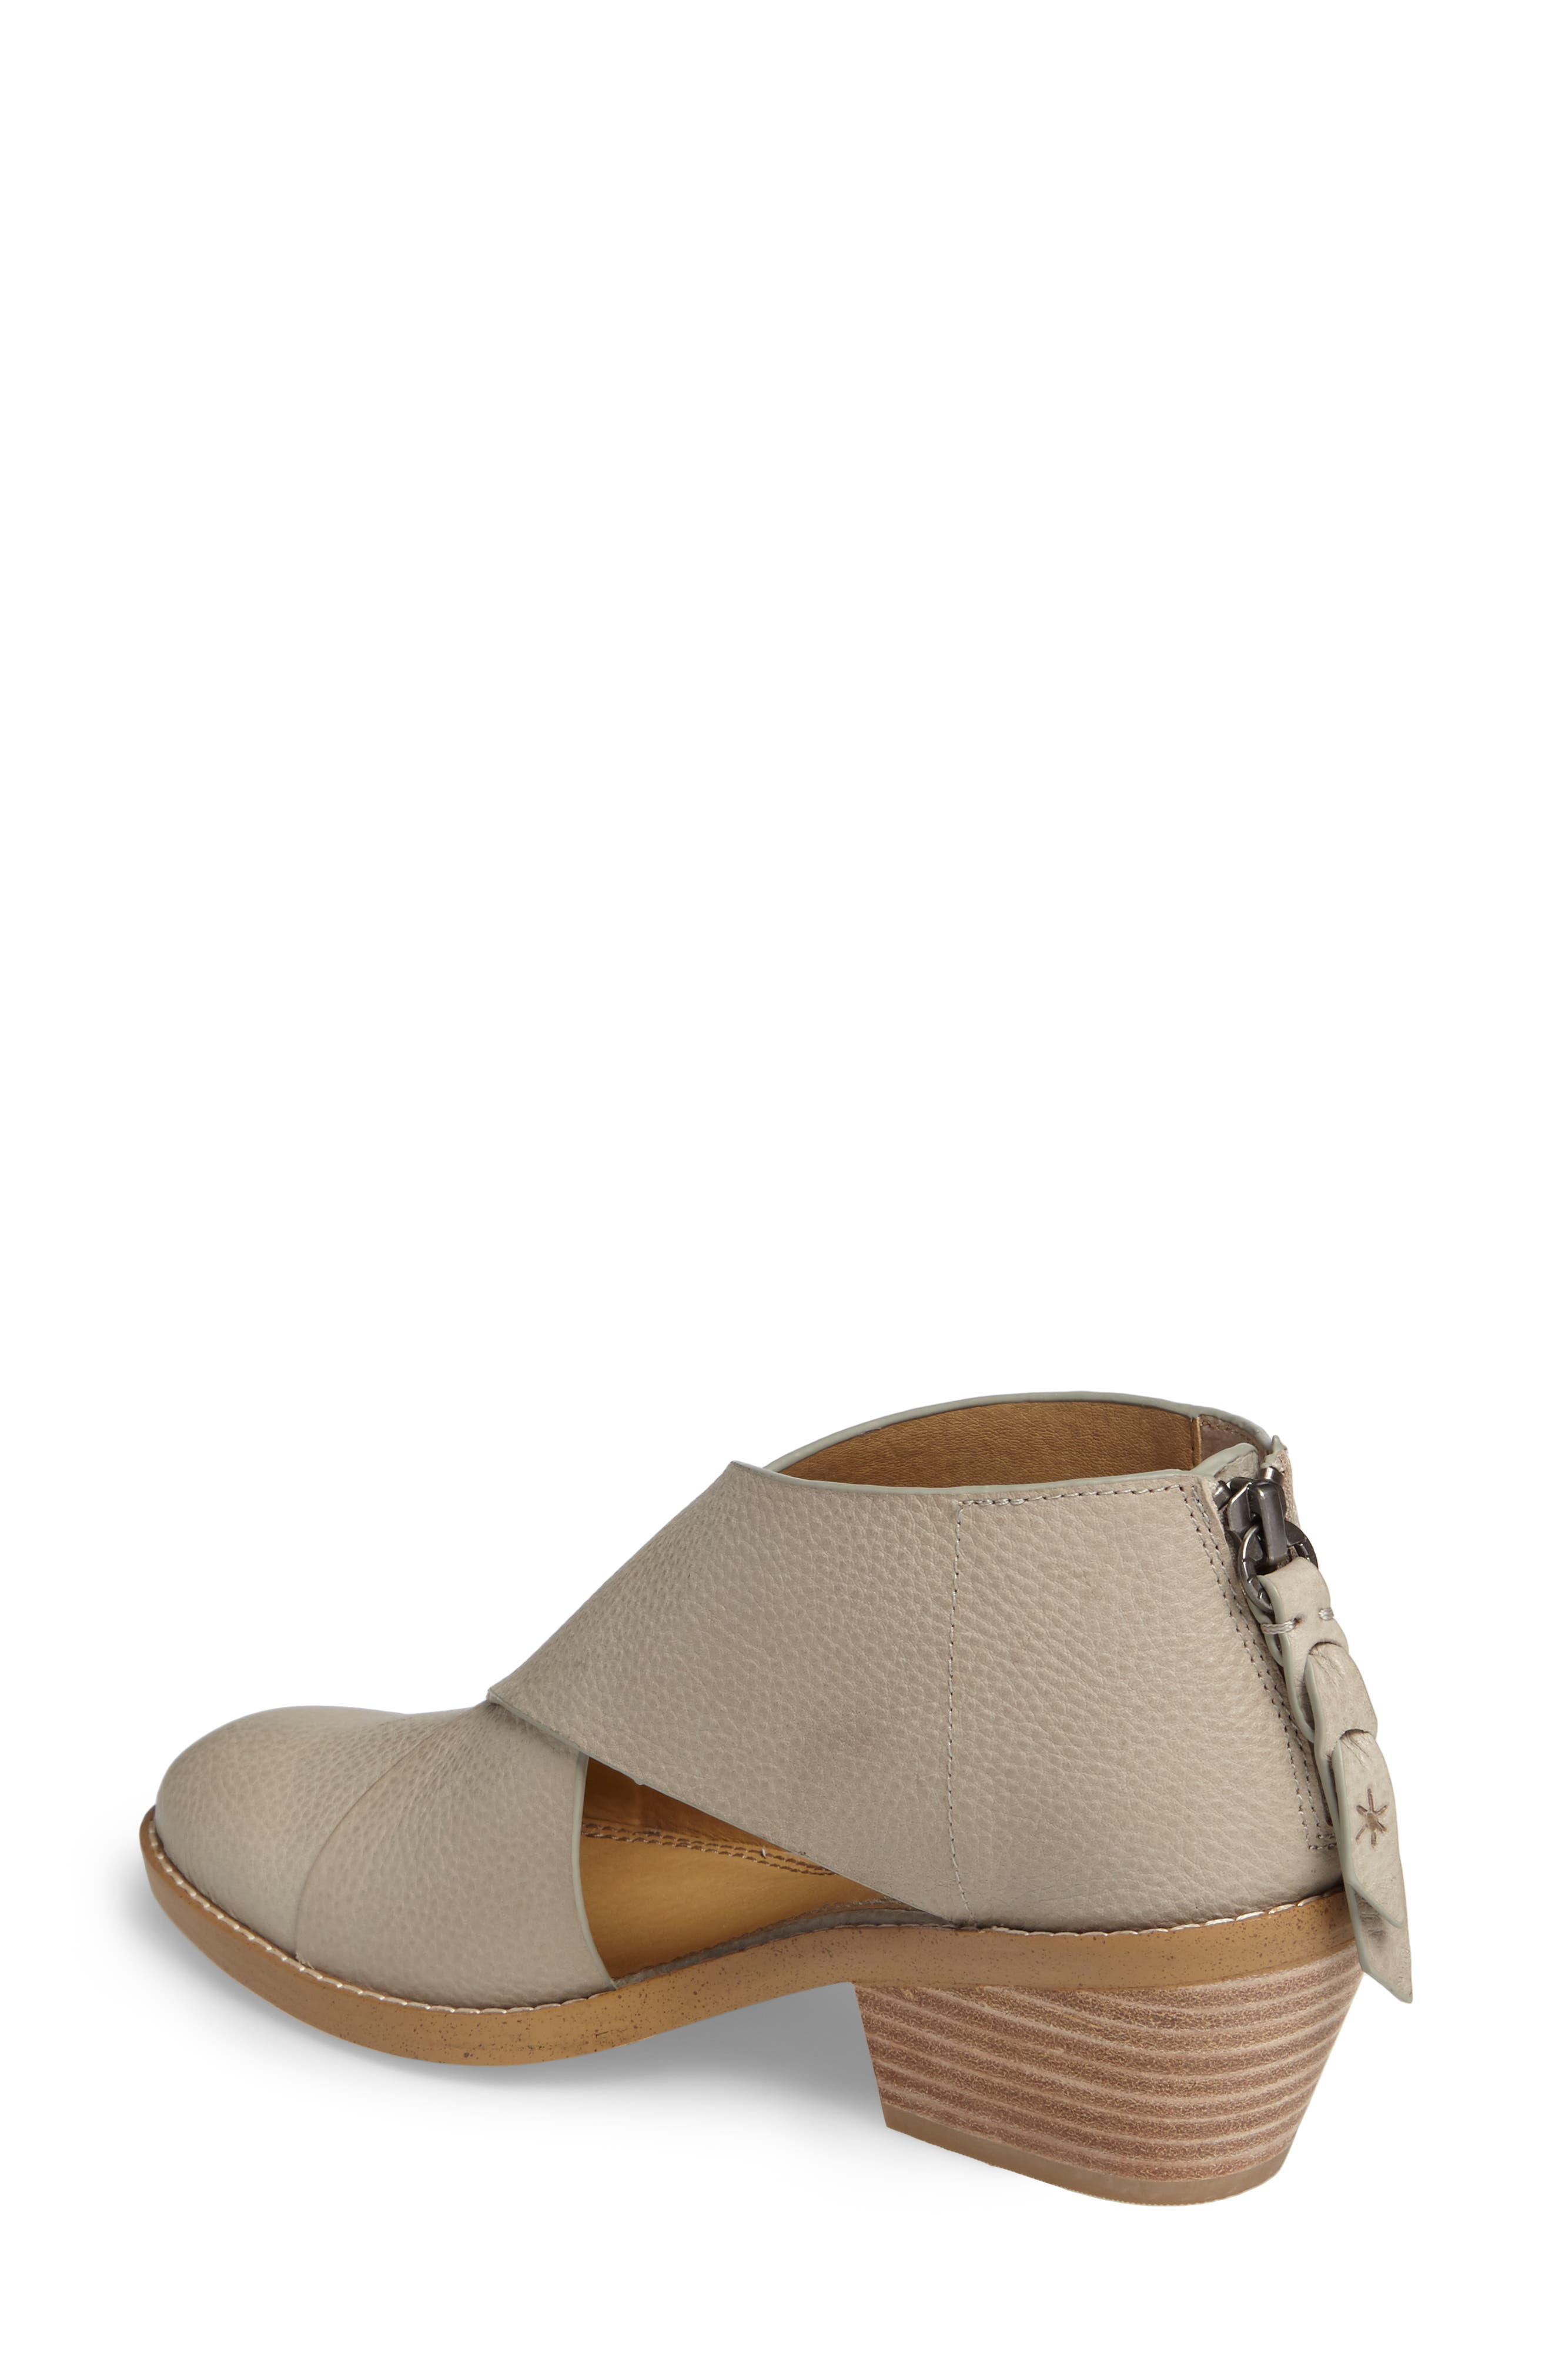 Danele Cutout Bootie,                             Alternate thumbnail 2, color,                             Pearl Grey Leather